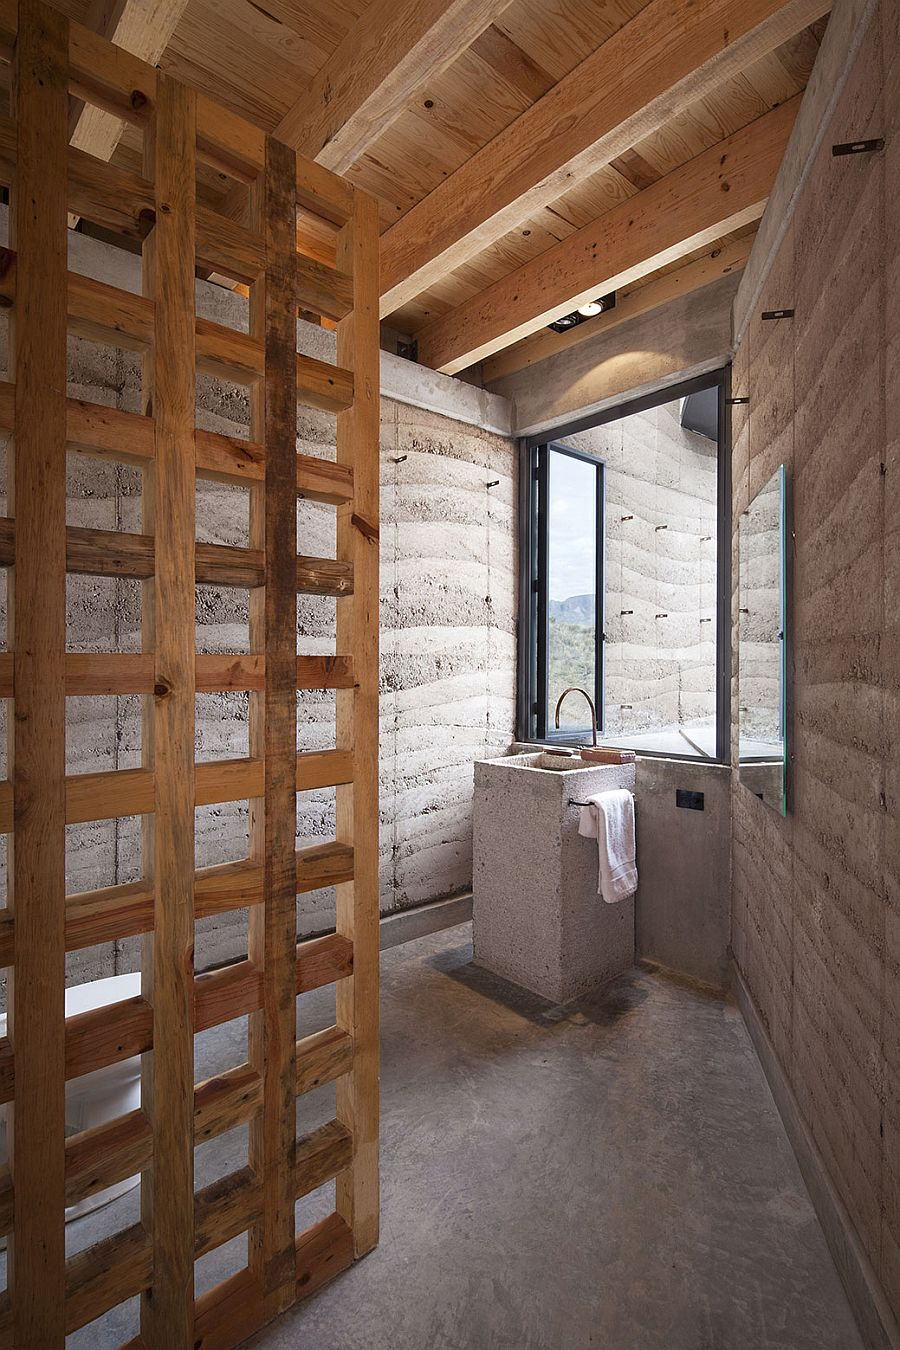 Lovely earthen walls offer natural insulation inside the house